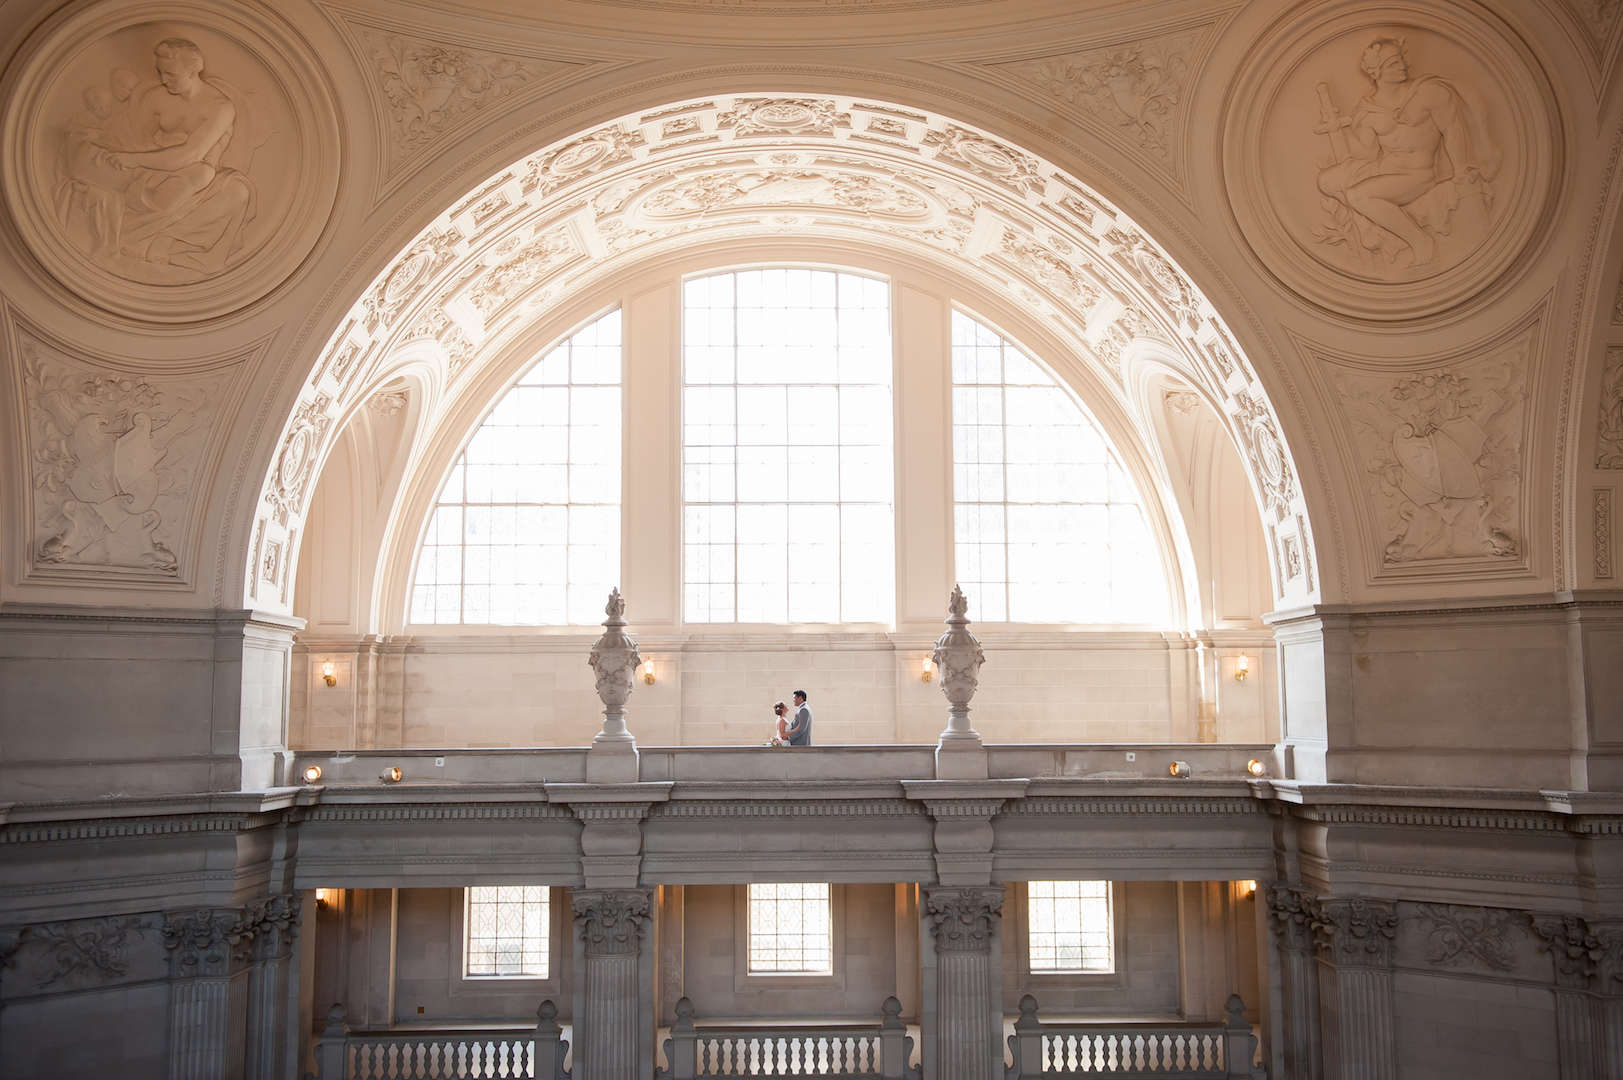 getting married at San francisco city hall